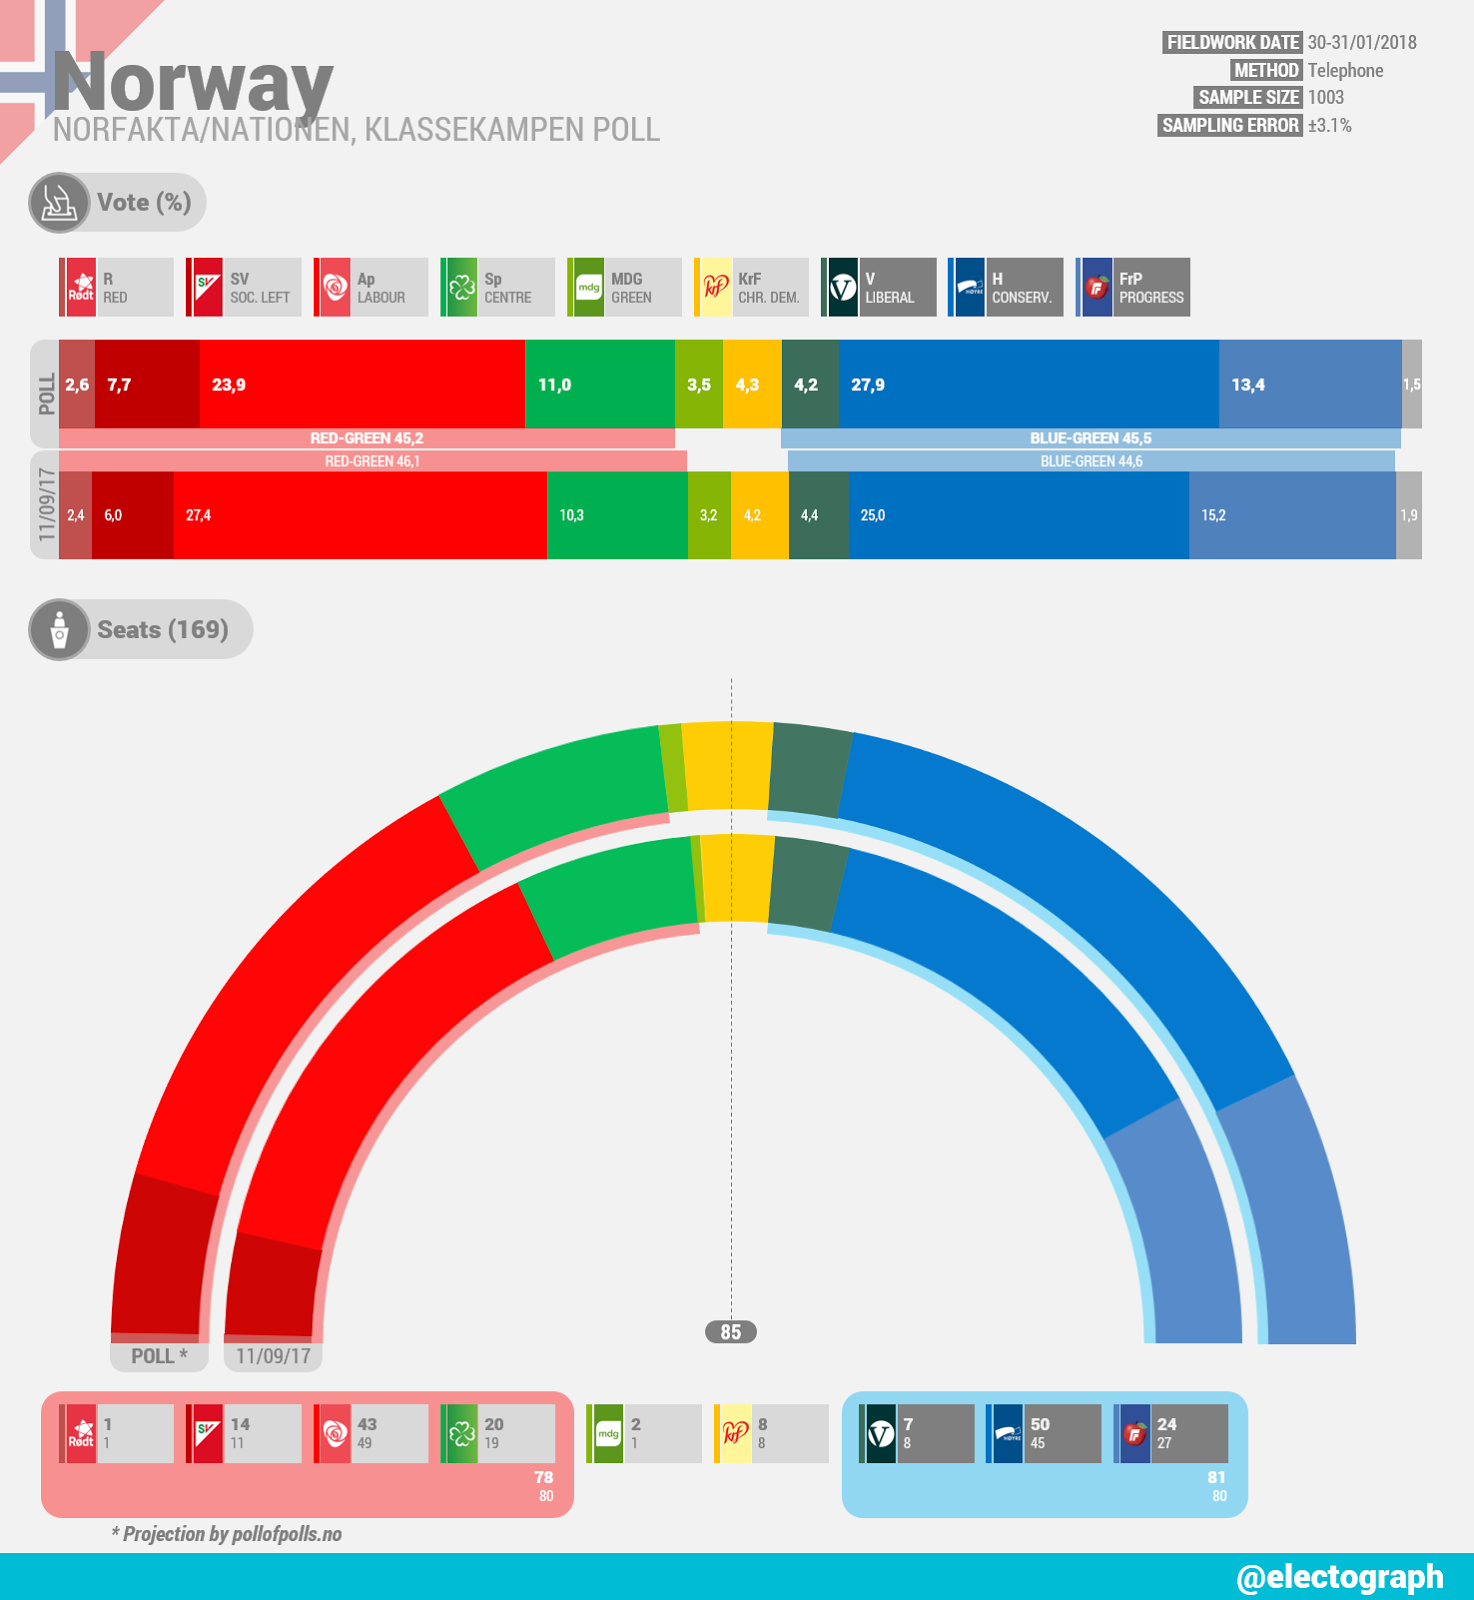 NORWAY Norfakta poll chart for Nationen and Klassekampen, January 2018